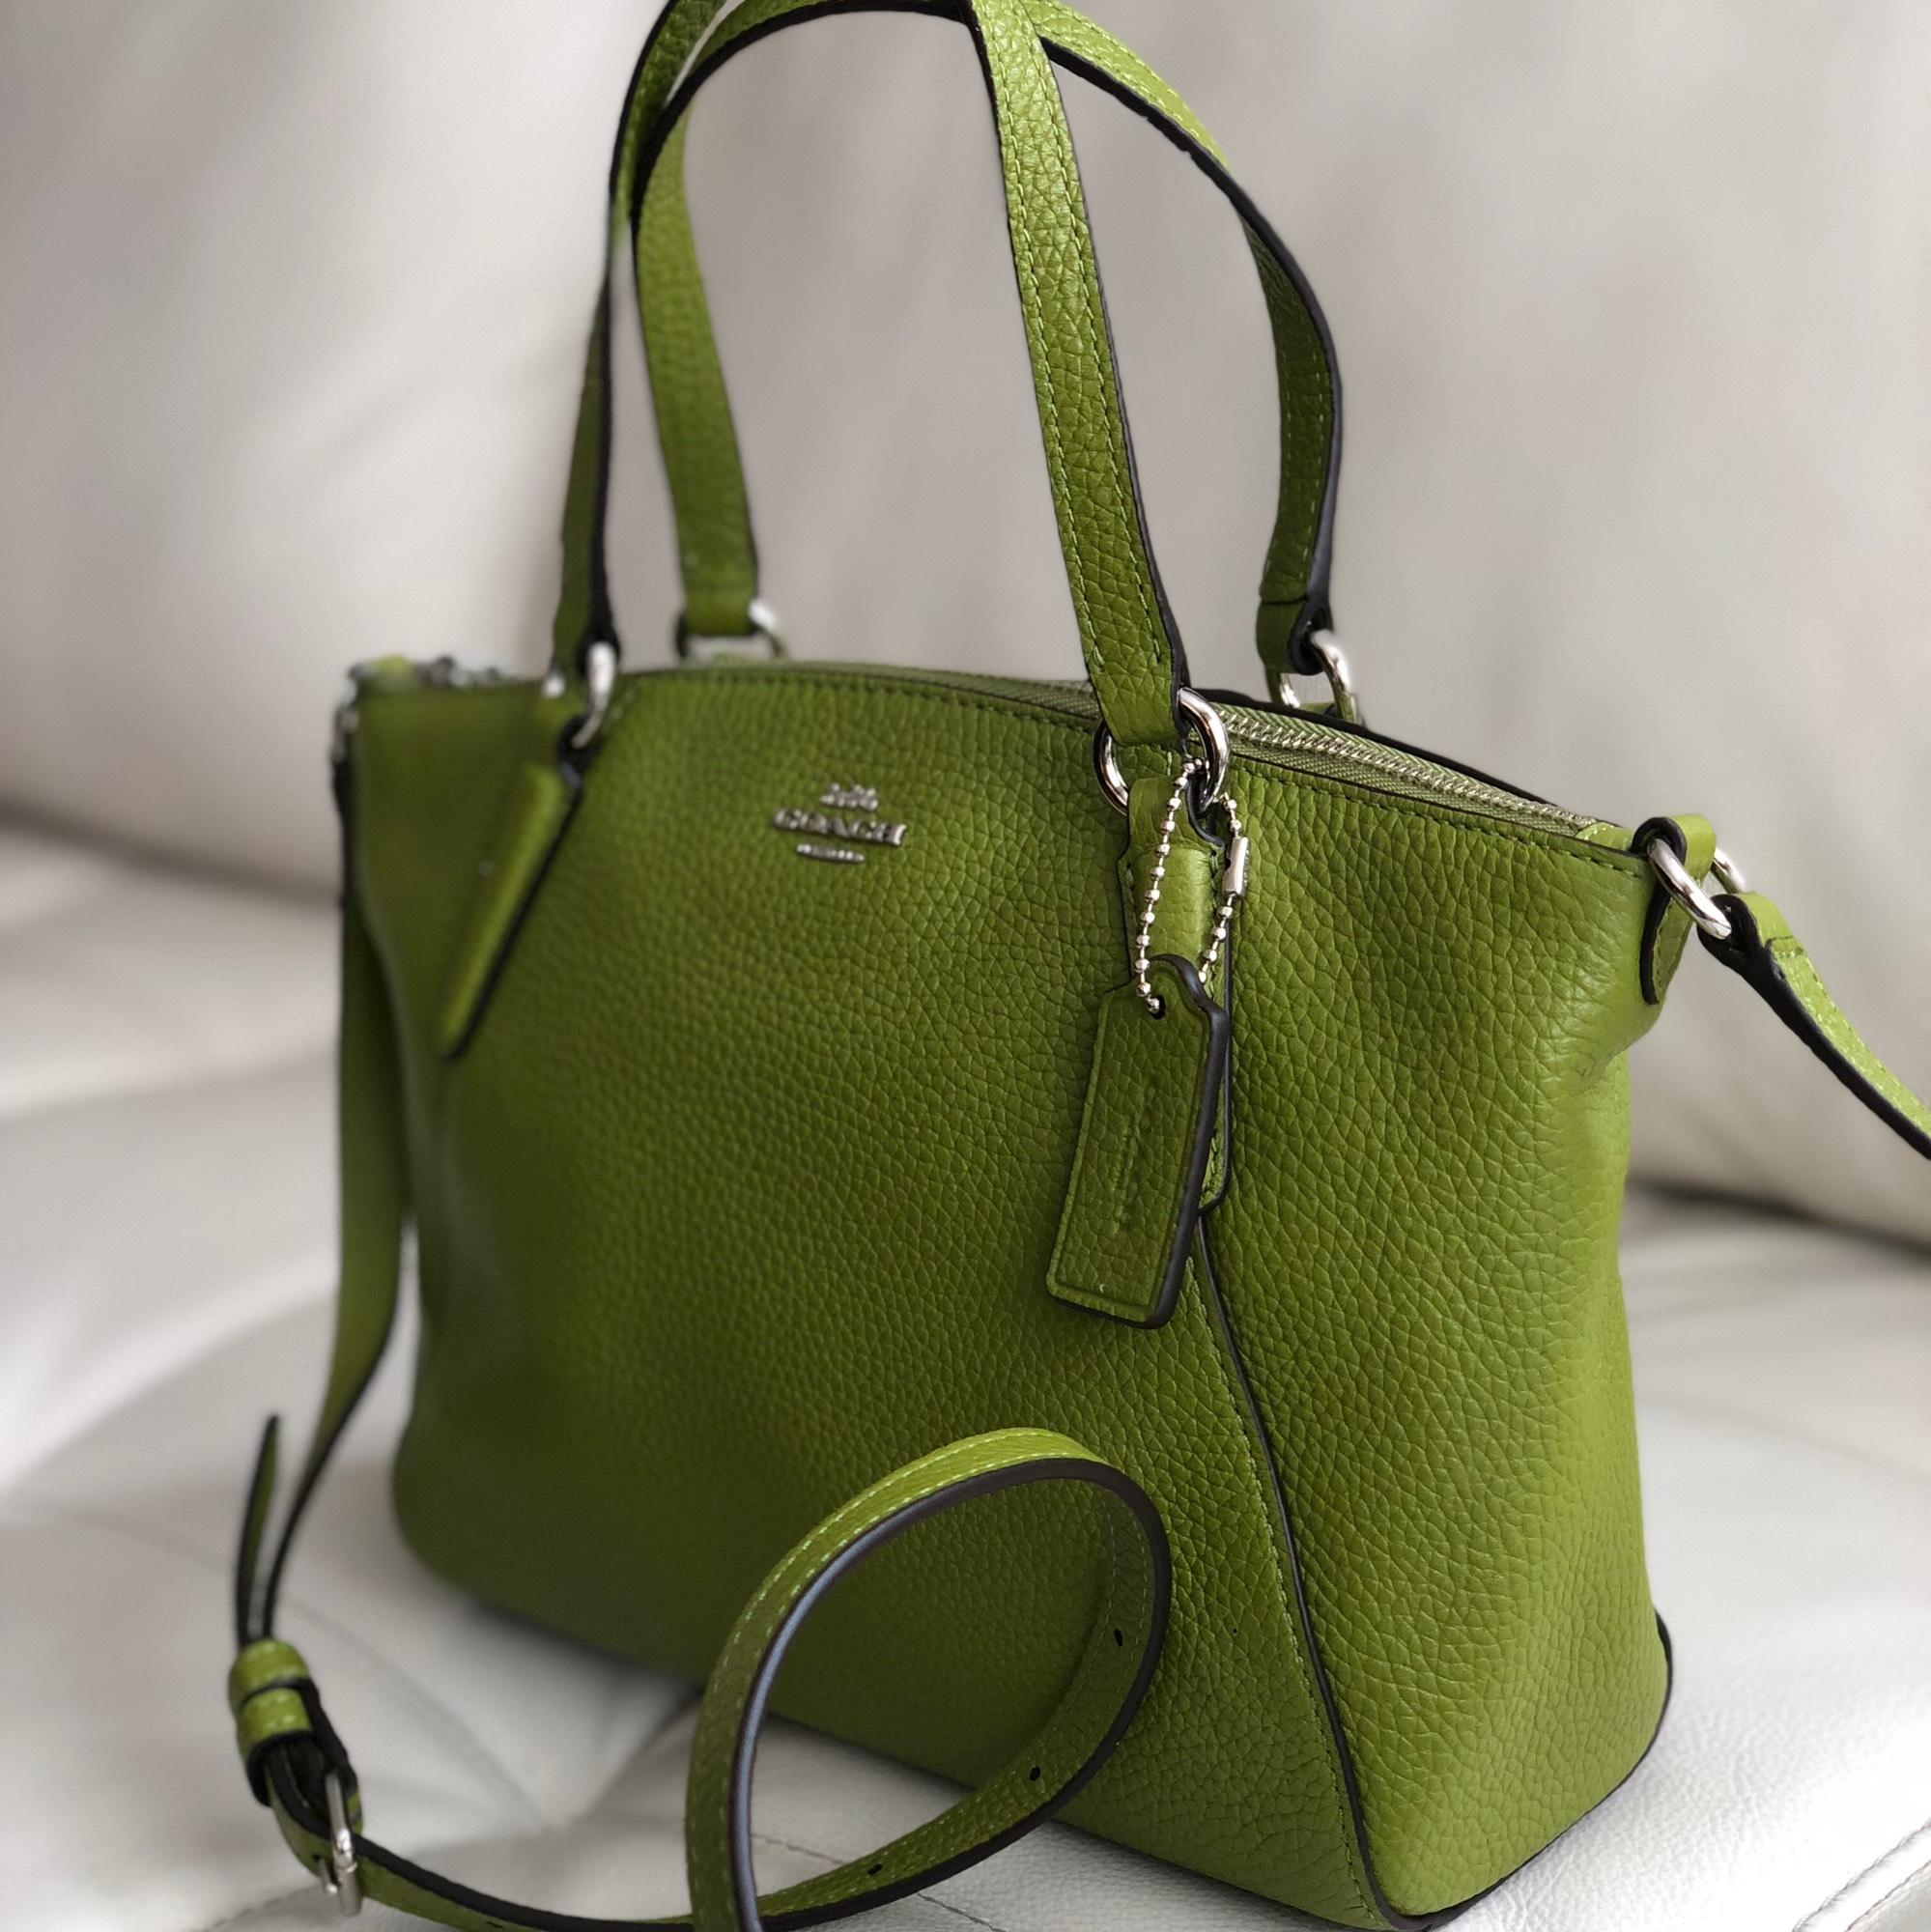 900855e2257c ... low price coach kelsey f28994 silver mini satchel yellow green leather  cross body bag tradesy b2dee